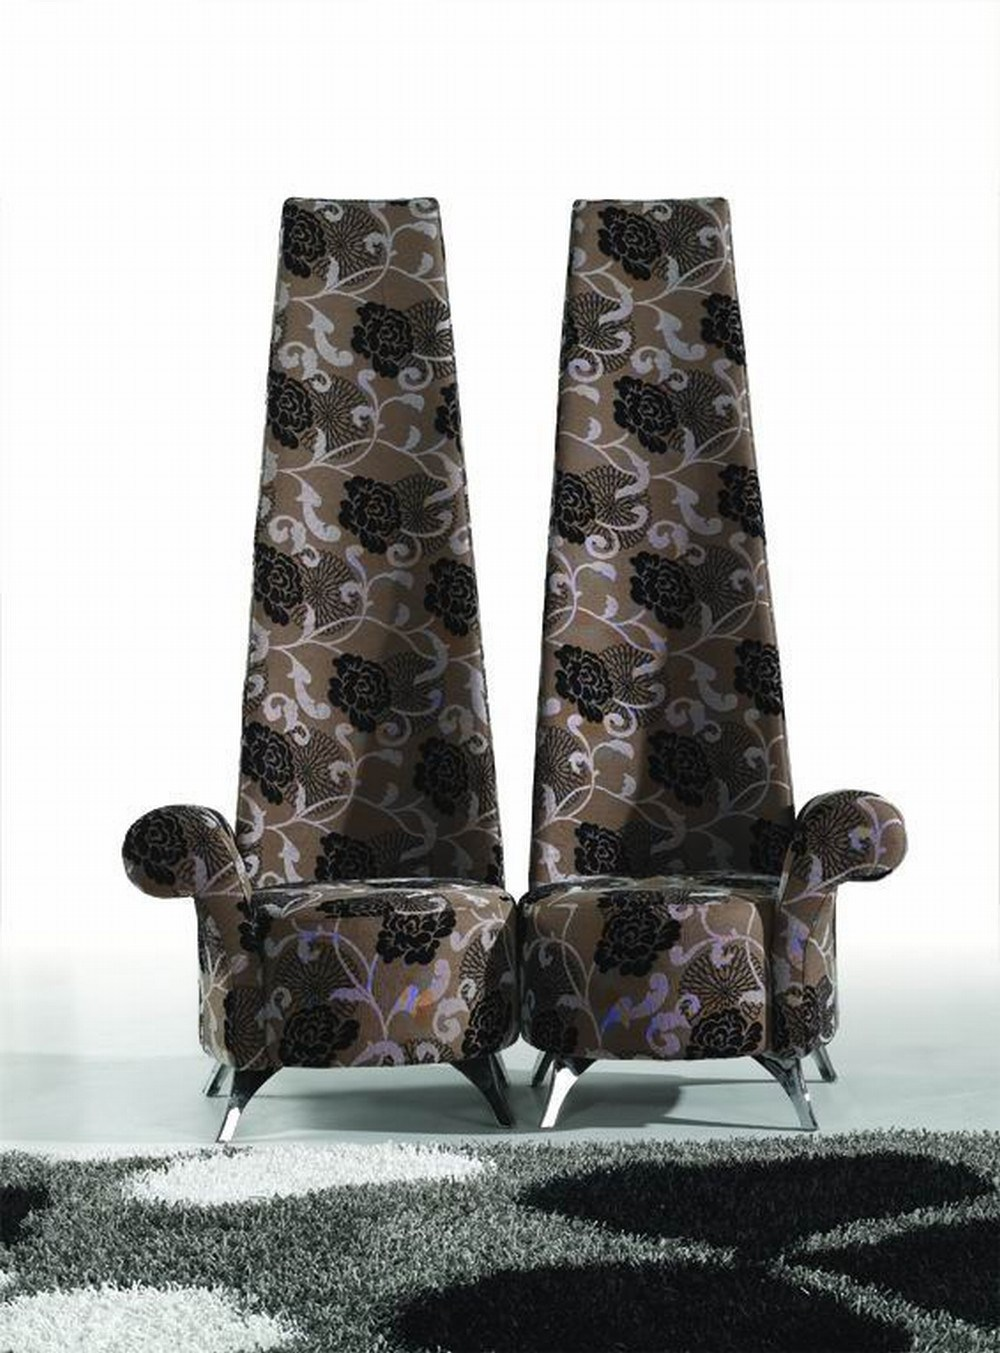 Narrow High Backed Dining Chair Chair Pads Amp Cushions